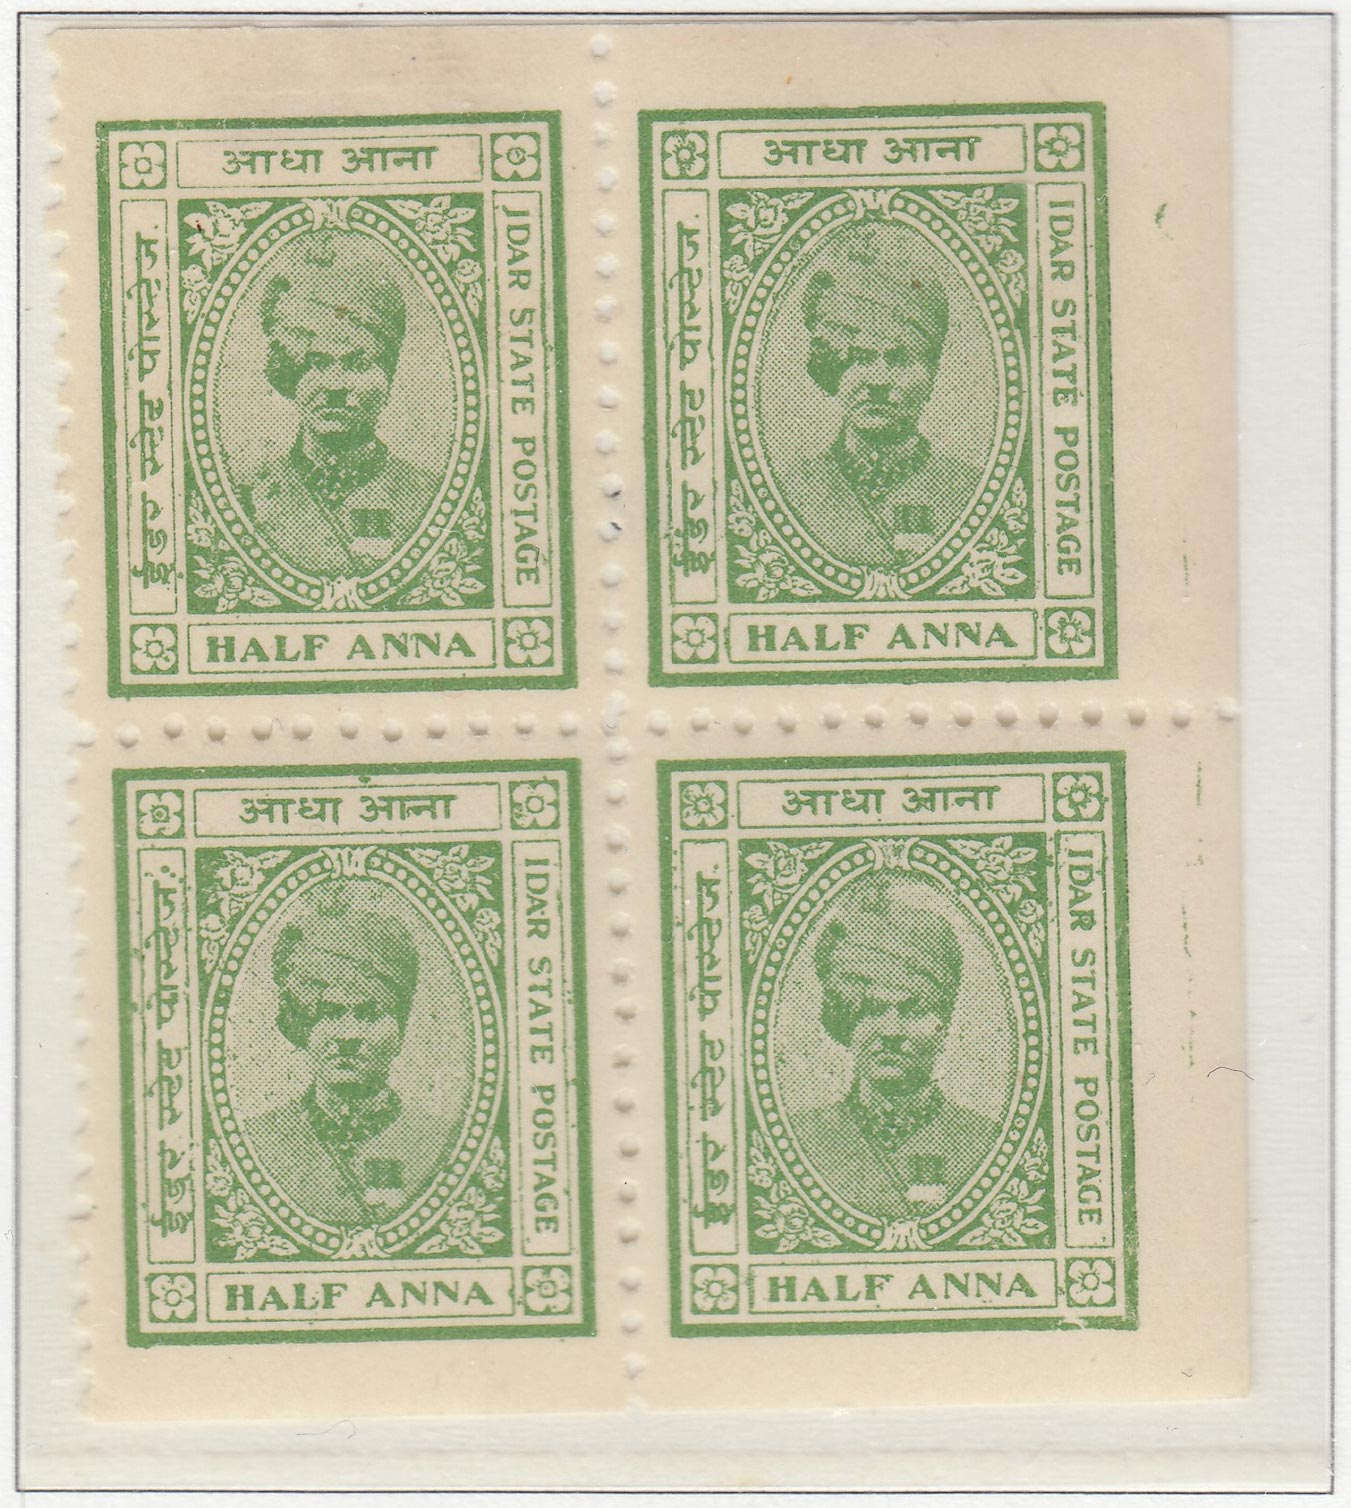 1-idar-half-anna-pale-yellow-green-thick-paper-booklet